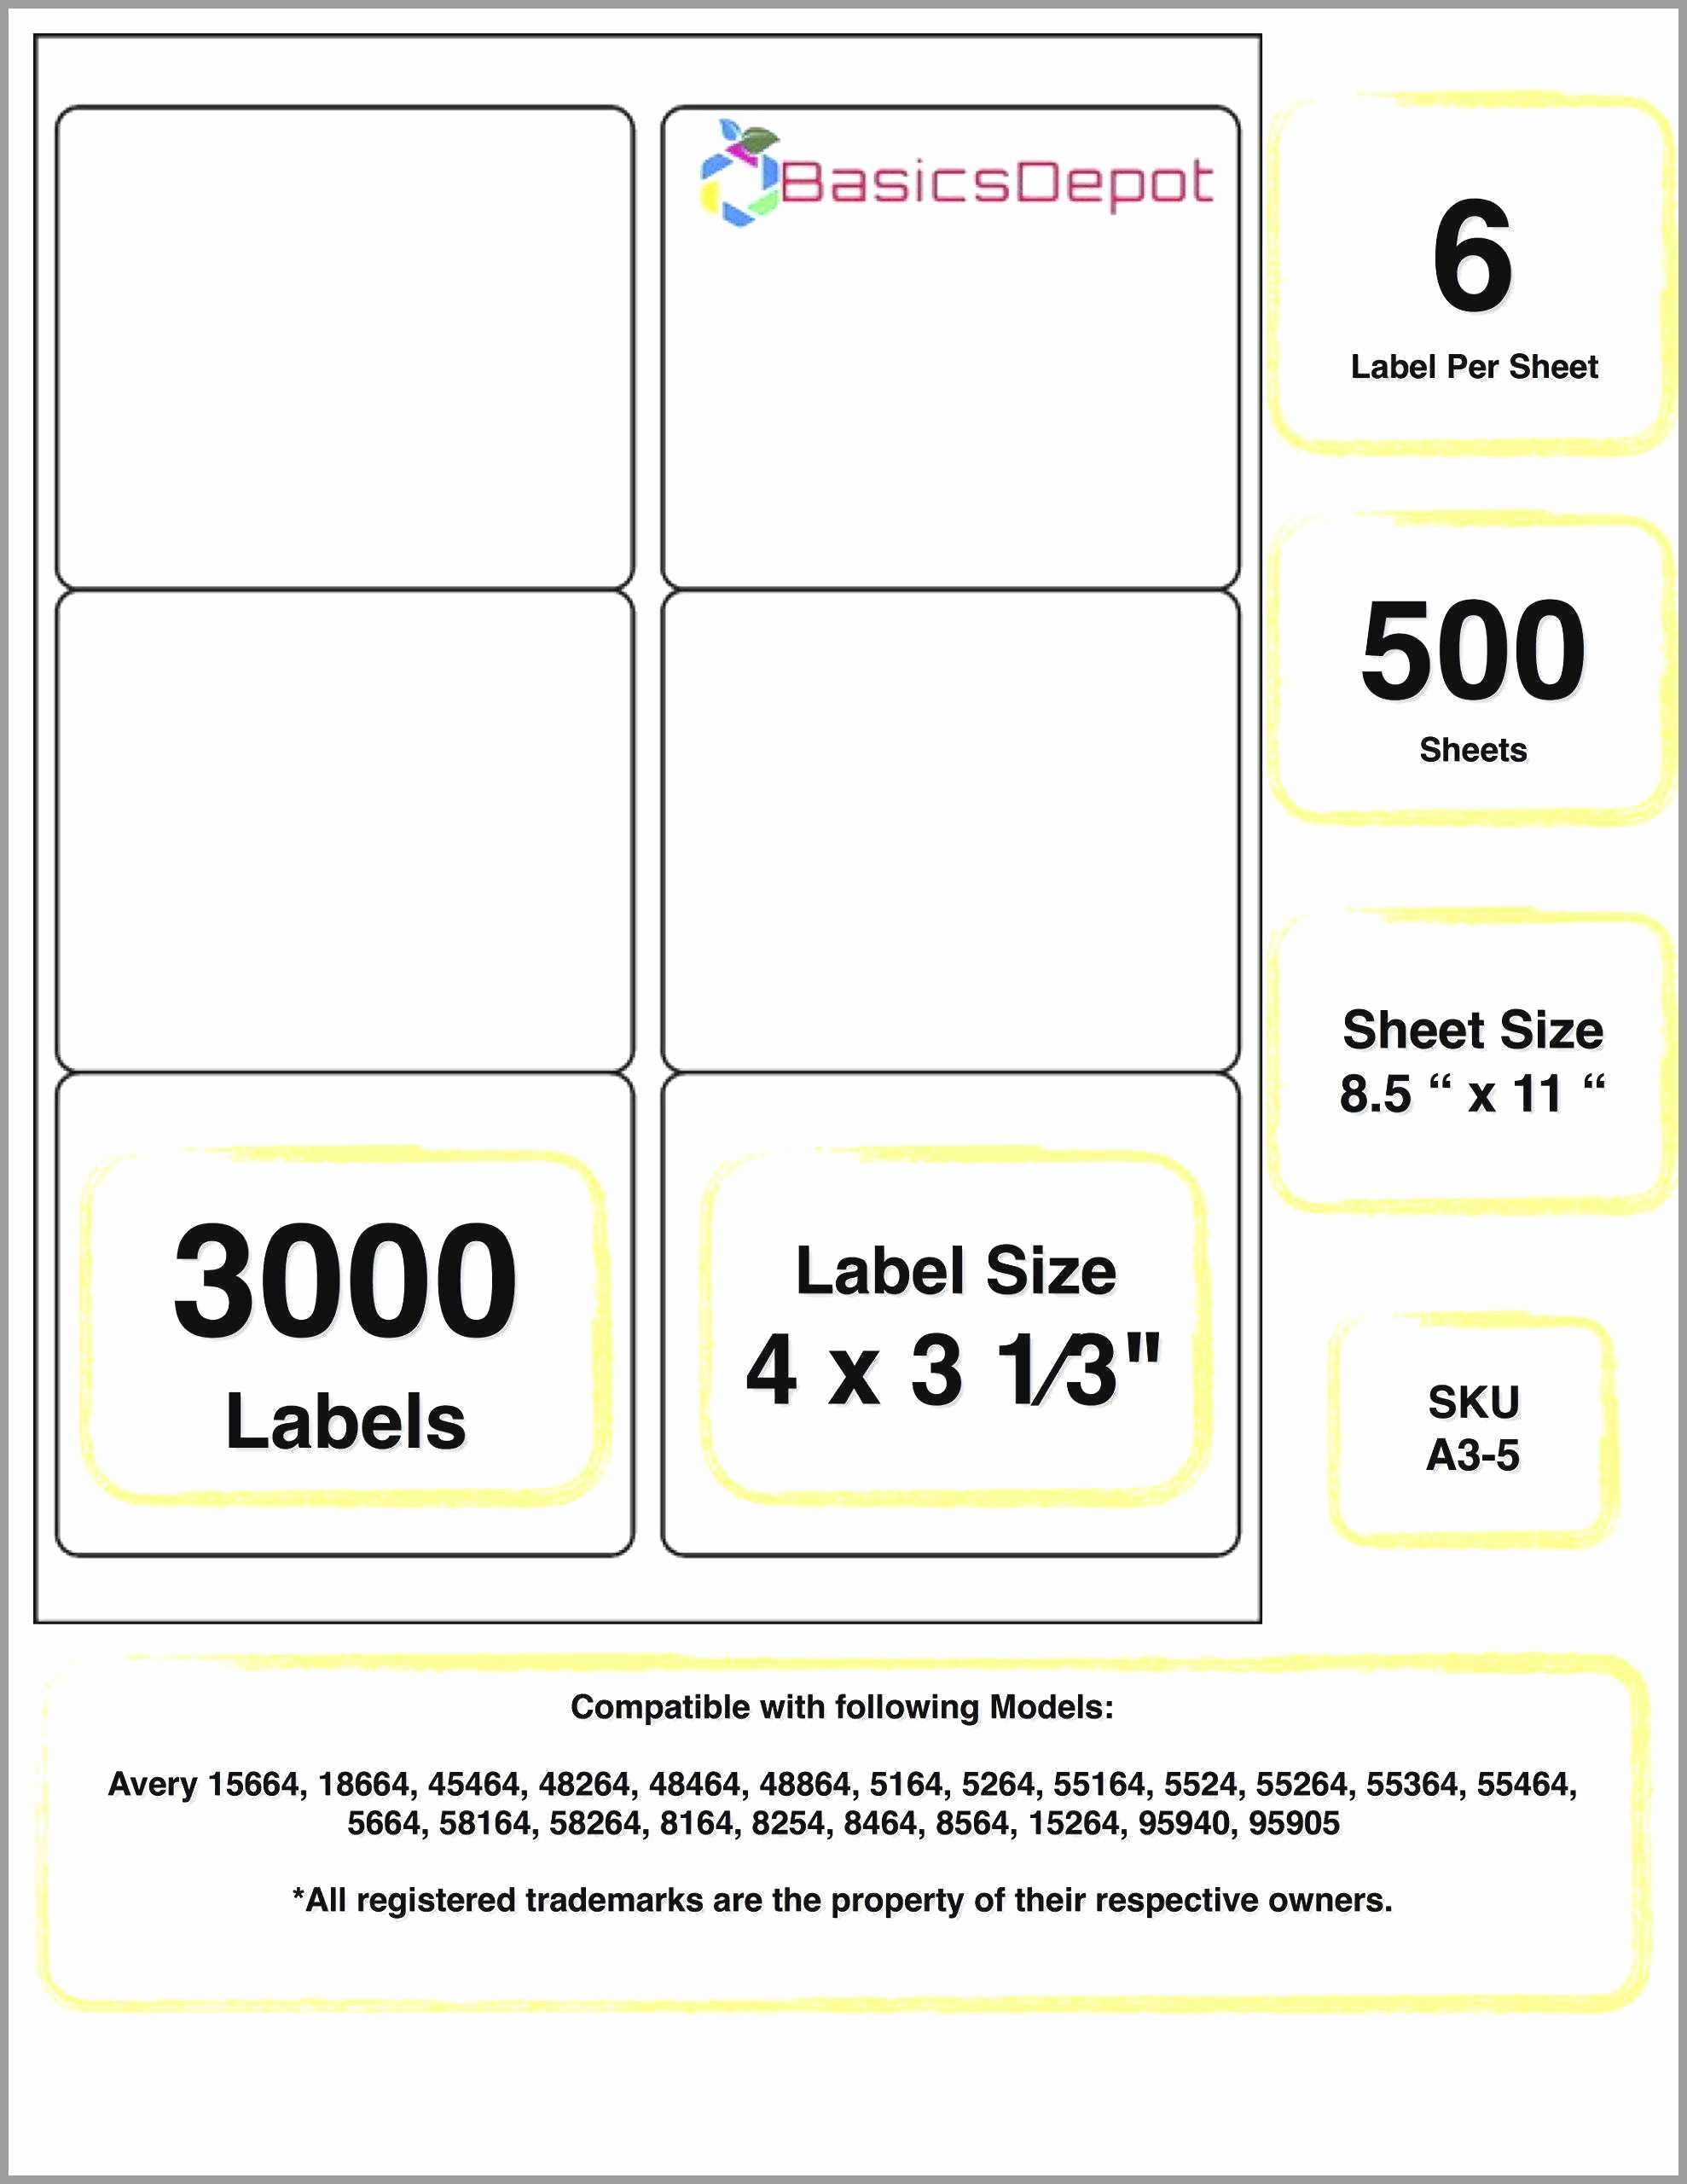 Avery 5164 Shipping Label Template Elegant Avery 6873 Template Lovely 96 Template for Avery 5164